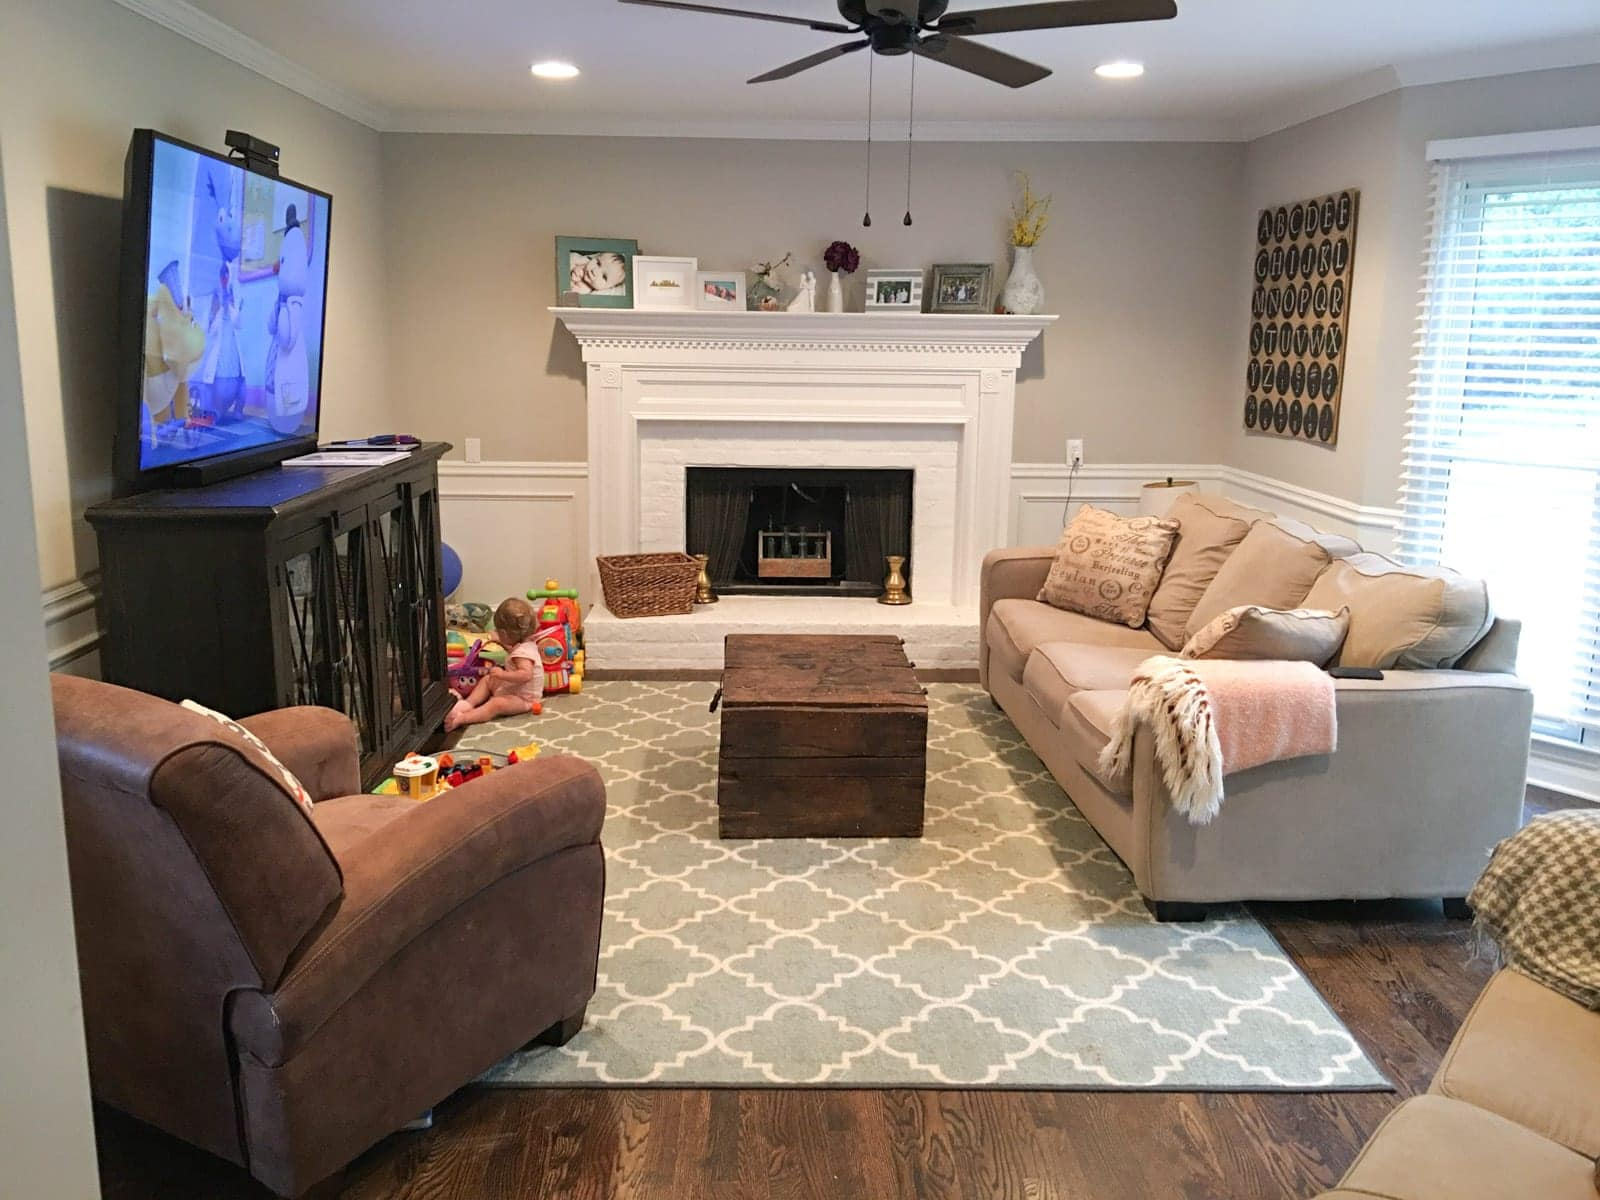 Reader SOS: Figuring out a Living Room Layout That Works